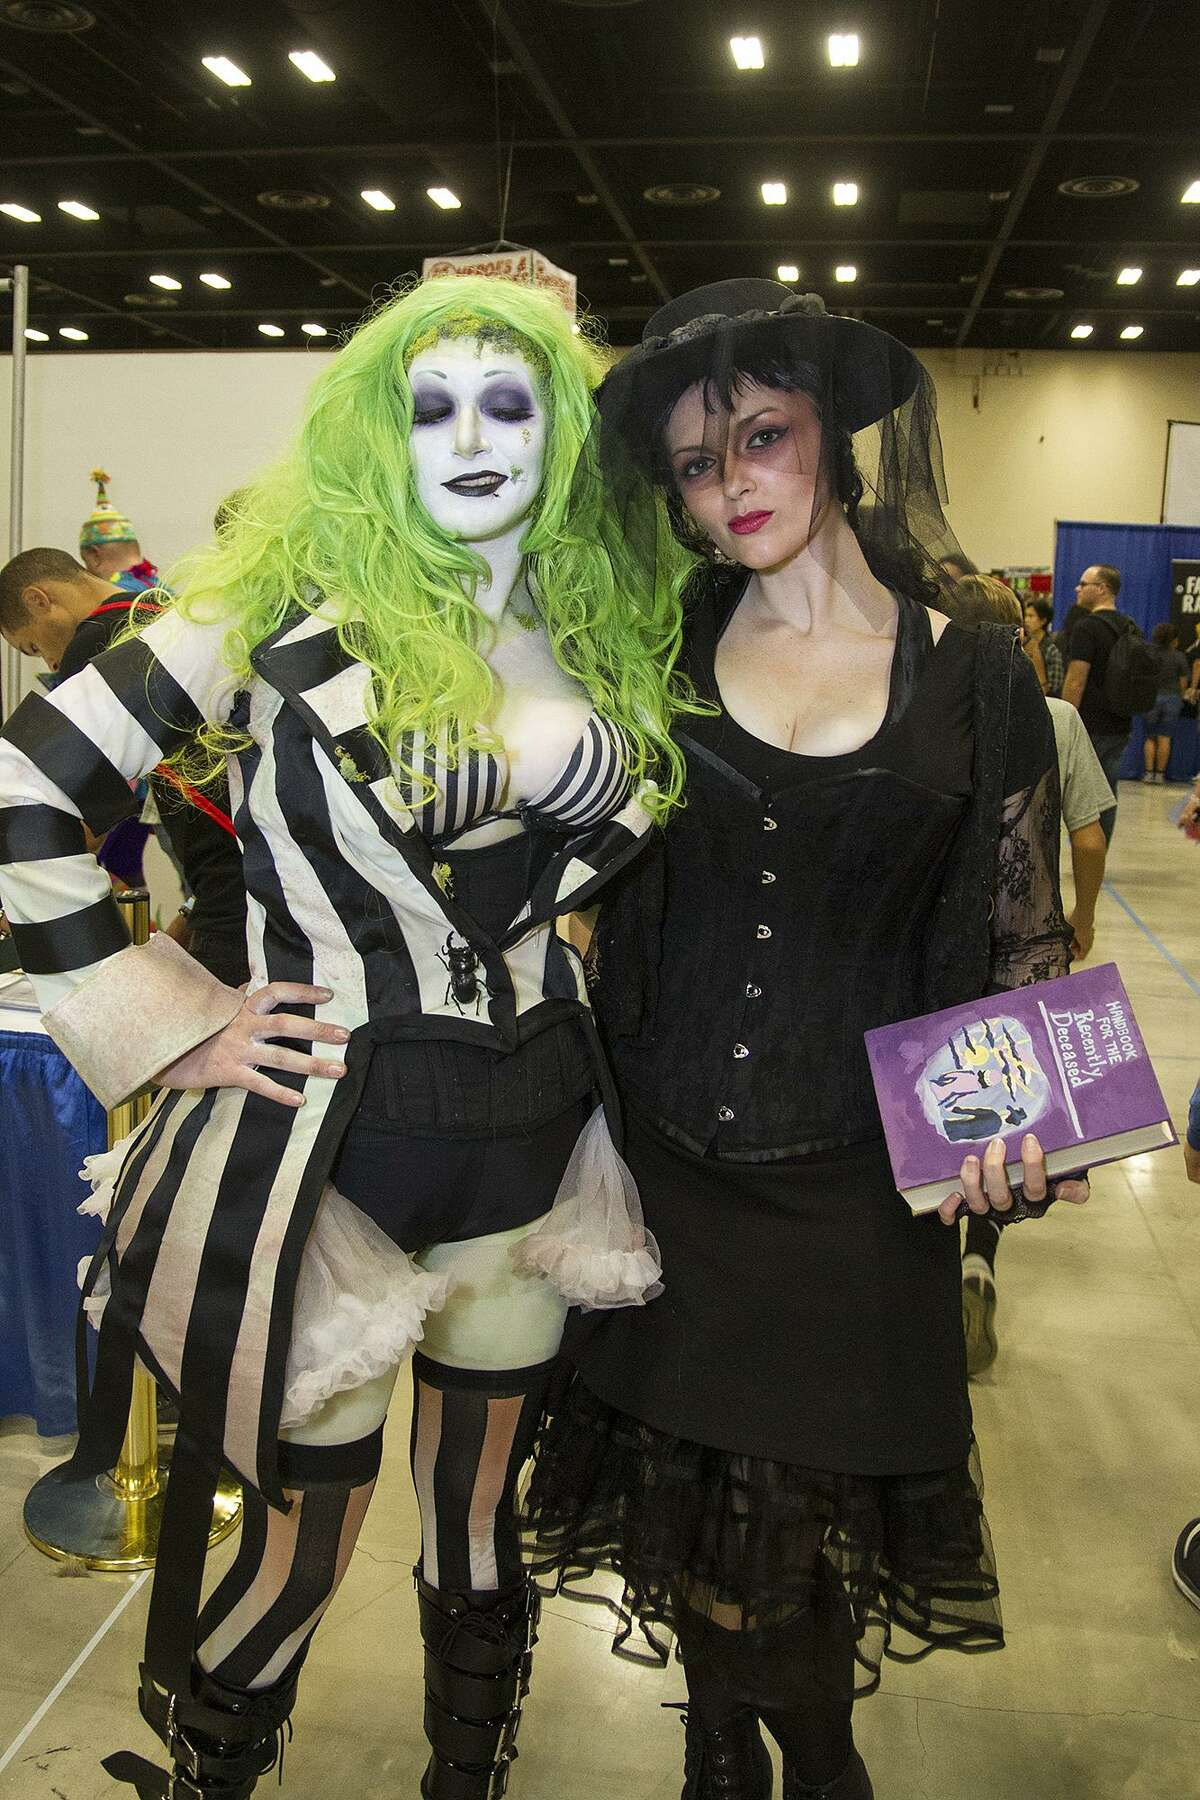 Faye Mortis (left) as Beetlejuice and Shauna Mobley as Lydia at Alamo City Comic Con, Saturday, Oct. 29, 2016.